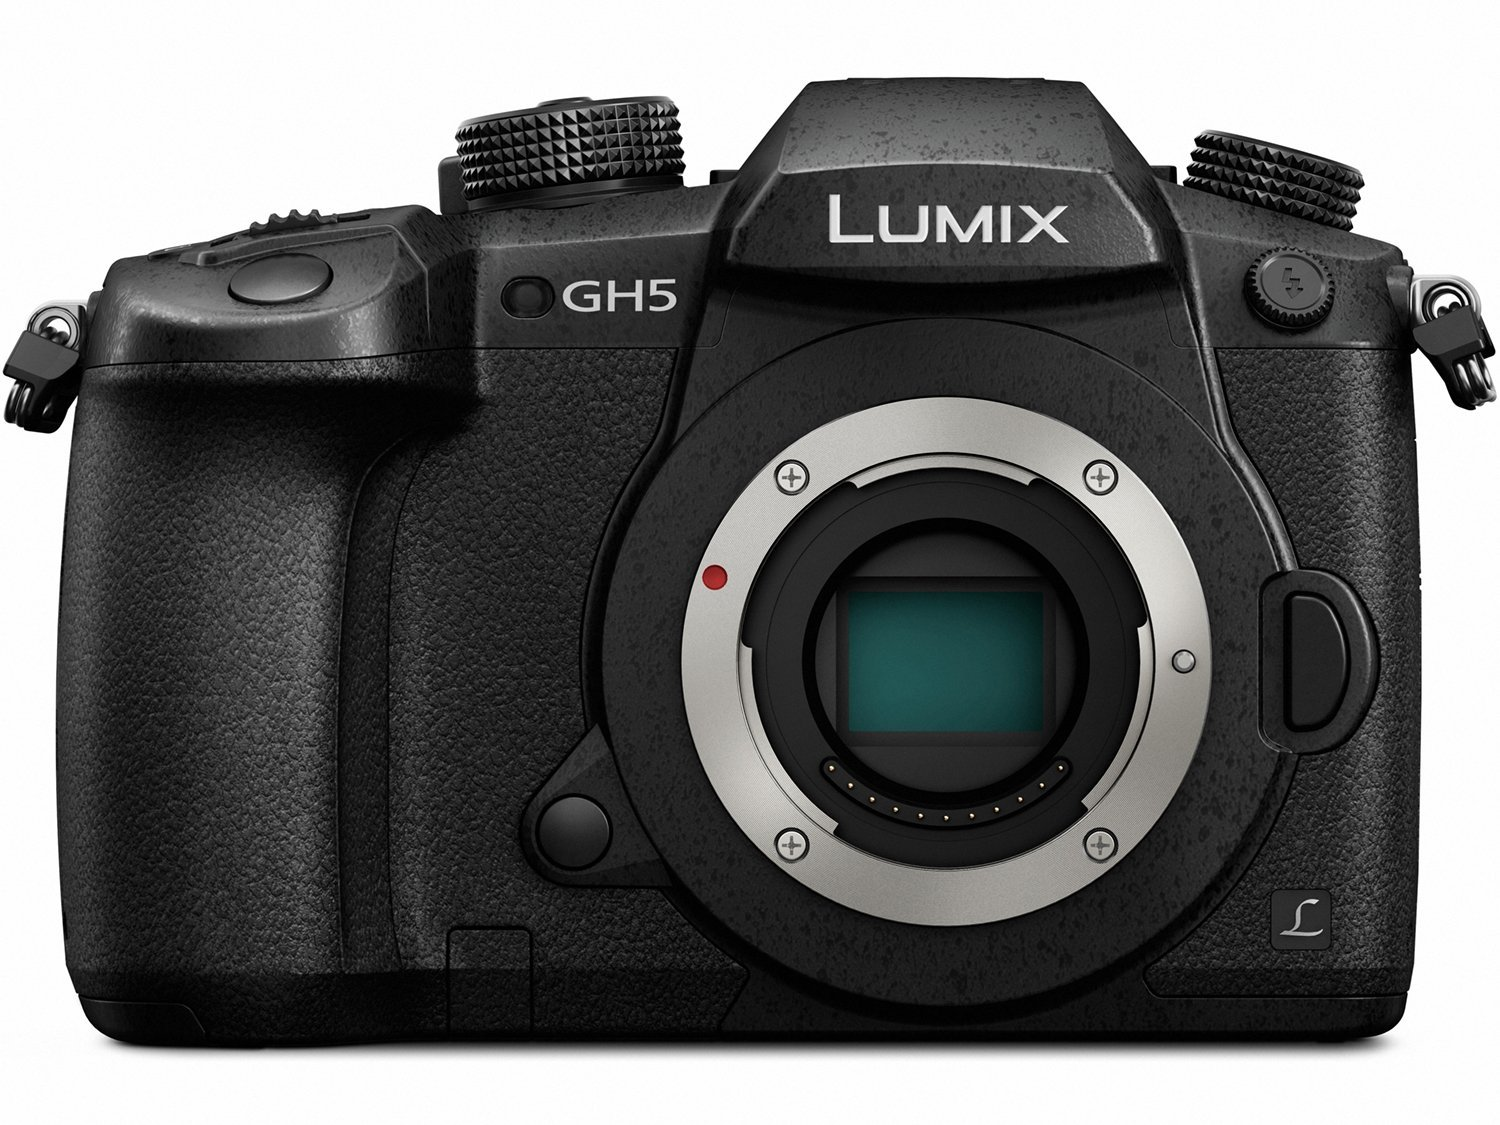 Lumix GH5 - Specs: APC-S Sensor, 20.3MP, 4K Video, IBISWho's it for? Videographers who want an easy, shake-free filming experience – and don't plan to shoot in low-light very often.